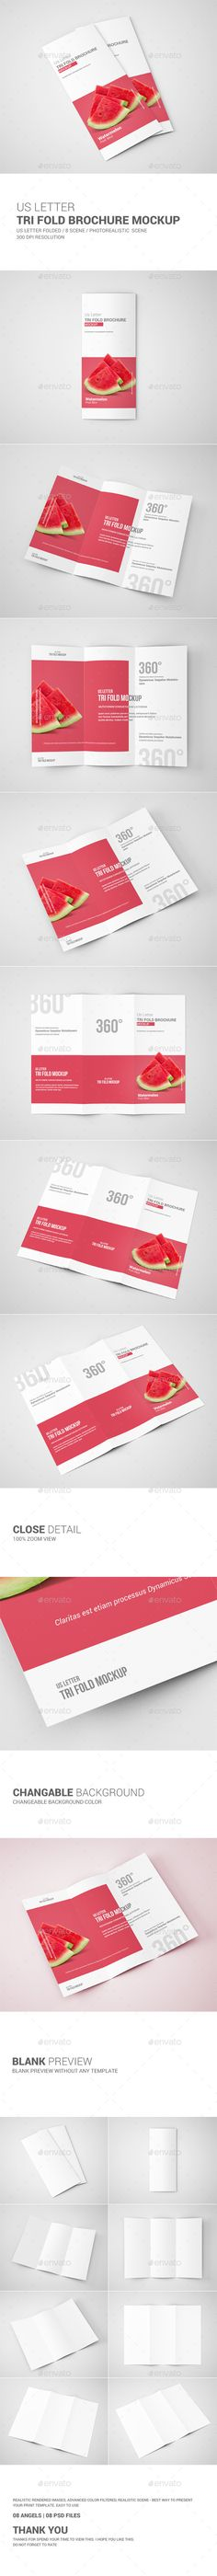 Buy Tri-Fold Brochure Mockup - US Letter by ToaSin on GraphicRiver. Tri-Fold Brochure Mock-Up – US Letter Tri-Fold Brochure Mock-Up which you can use to any US letter paper document. Graphic Design Brochure, Brochure Layout, Freelance Graphic Design, Graphic Design Projects, Brochure Trifold, Flyer Layout, Print Layout, Layout Design, Print Design